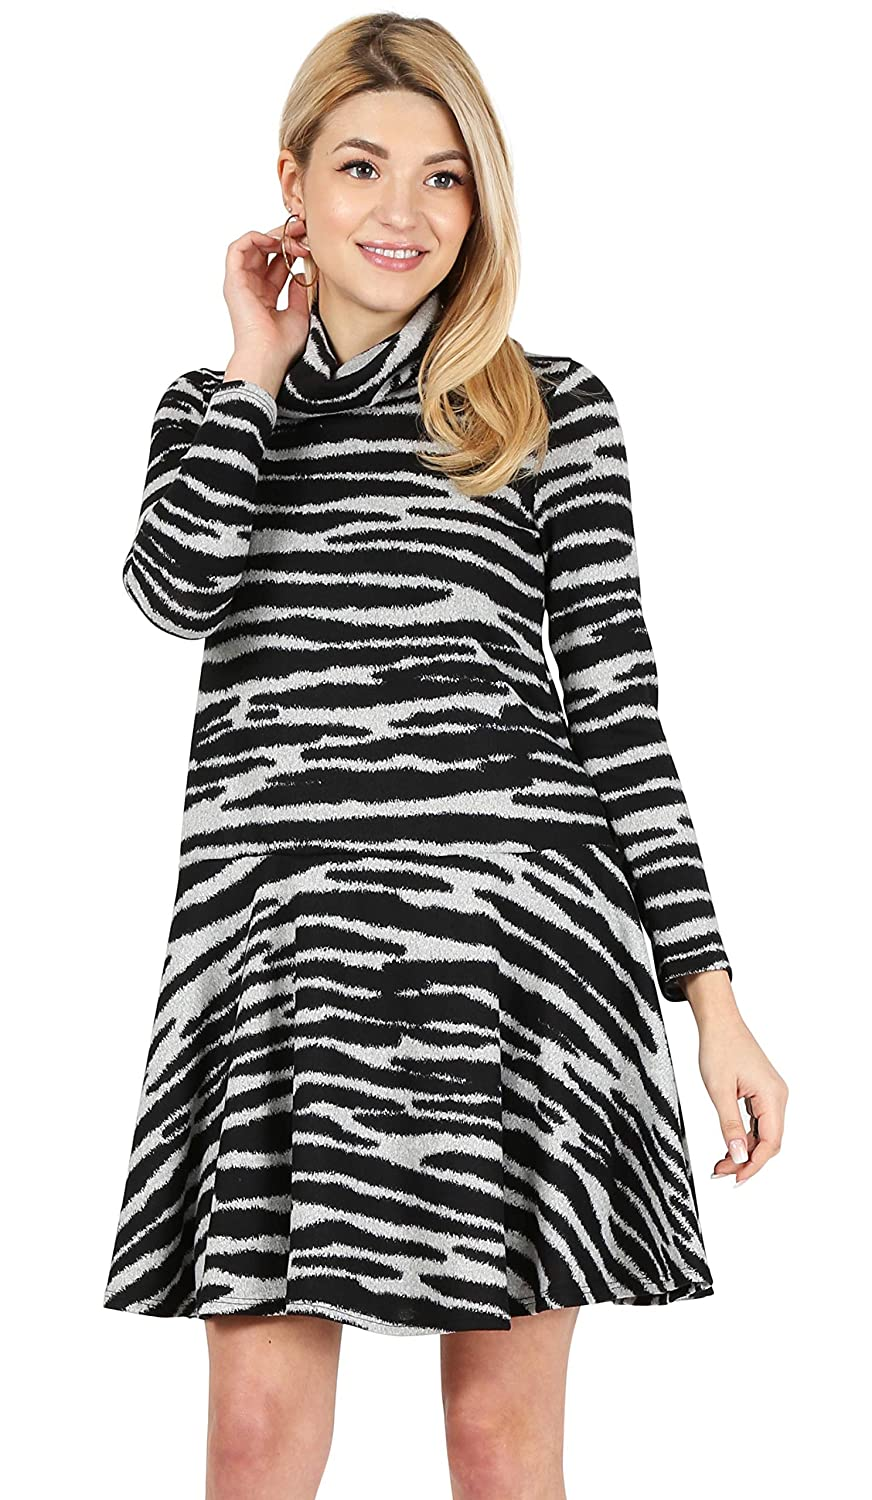 e86b356dee3 Womens Long Sleeve Winter Cowl Neck Sweater Dress Reg and Plus Size- Made  in USA at Amazon Women s Clothing store